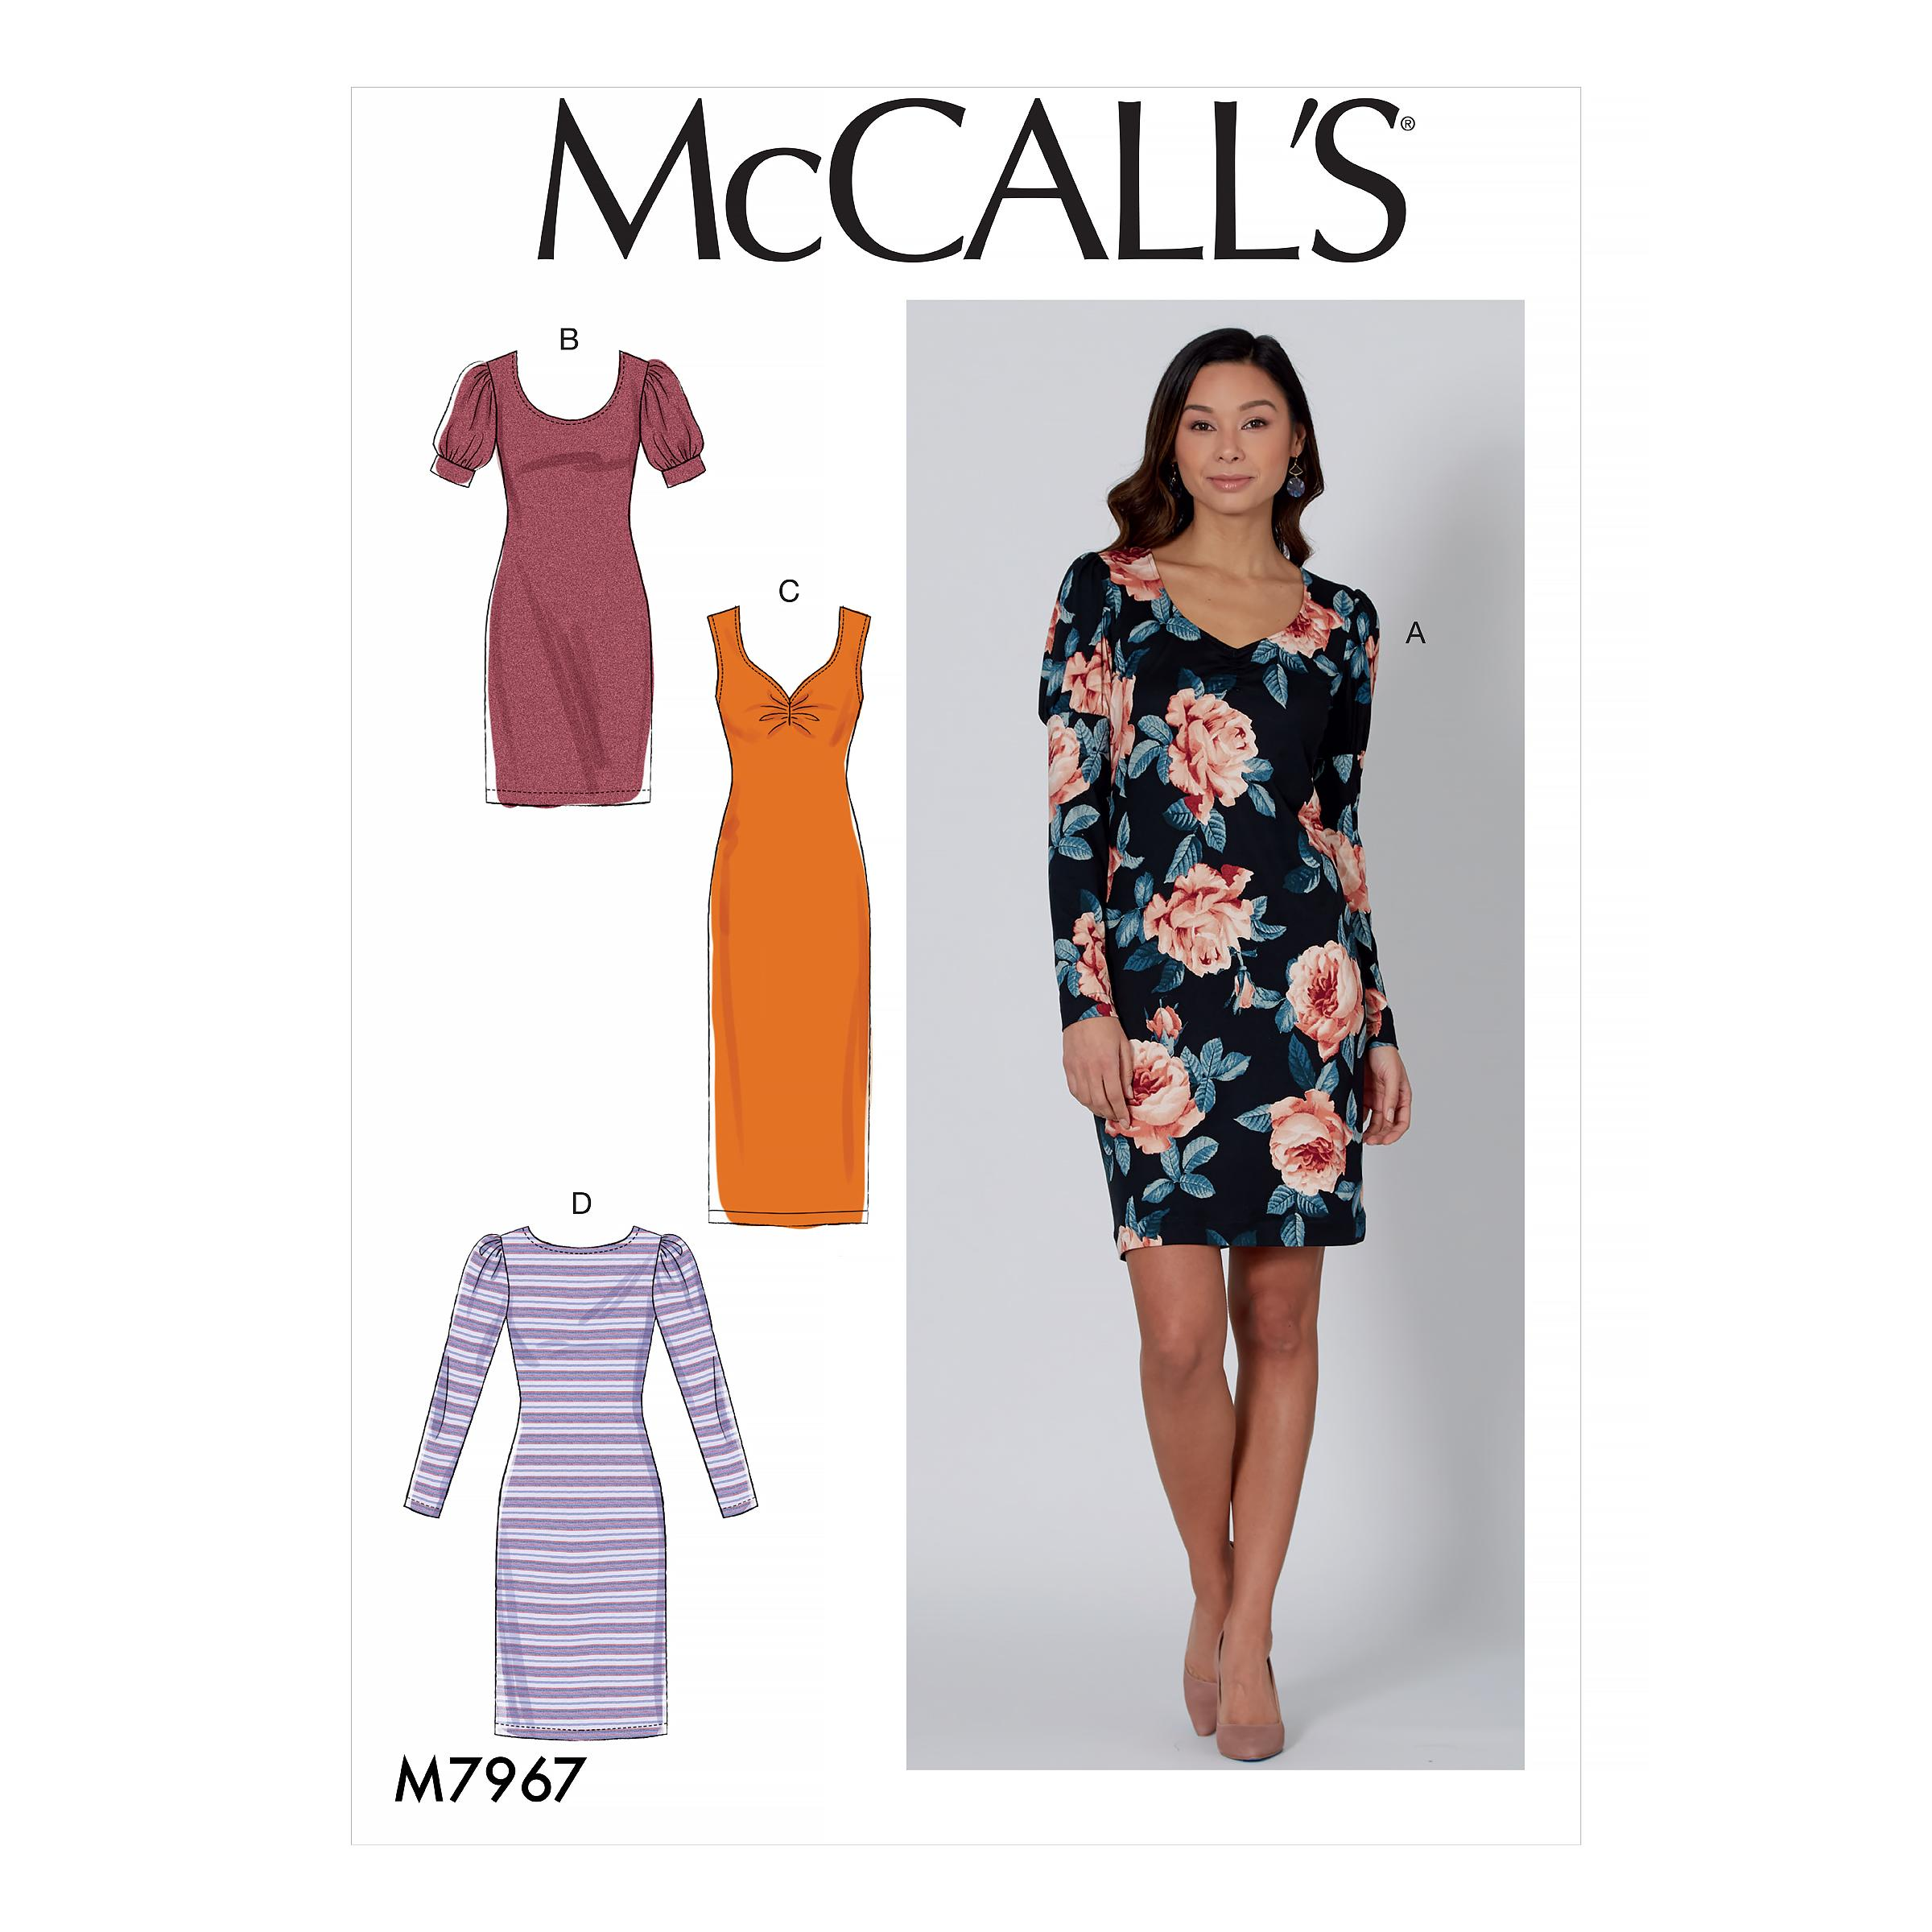 McCalls M7967 Misses Dresses, Misses Prom, Evening & Bridal